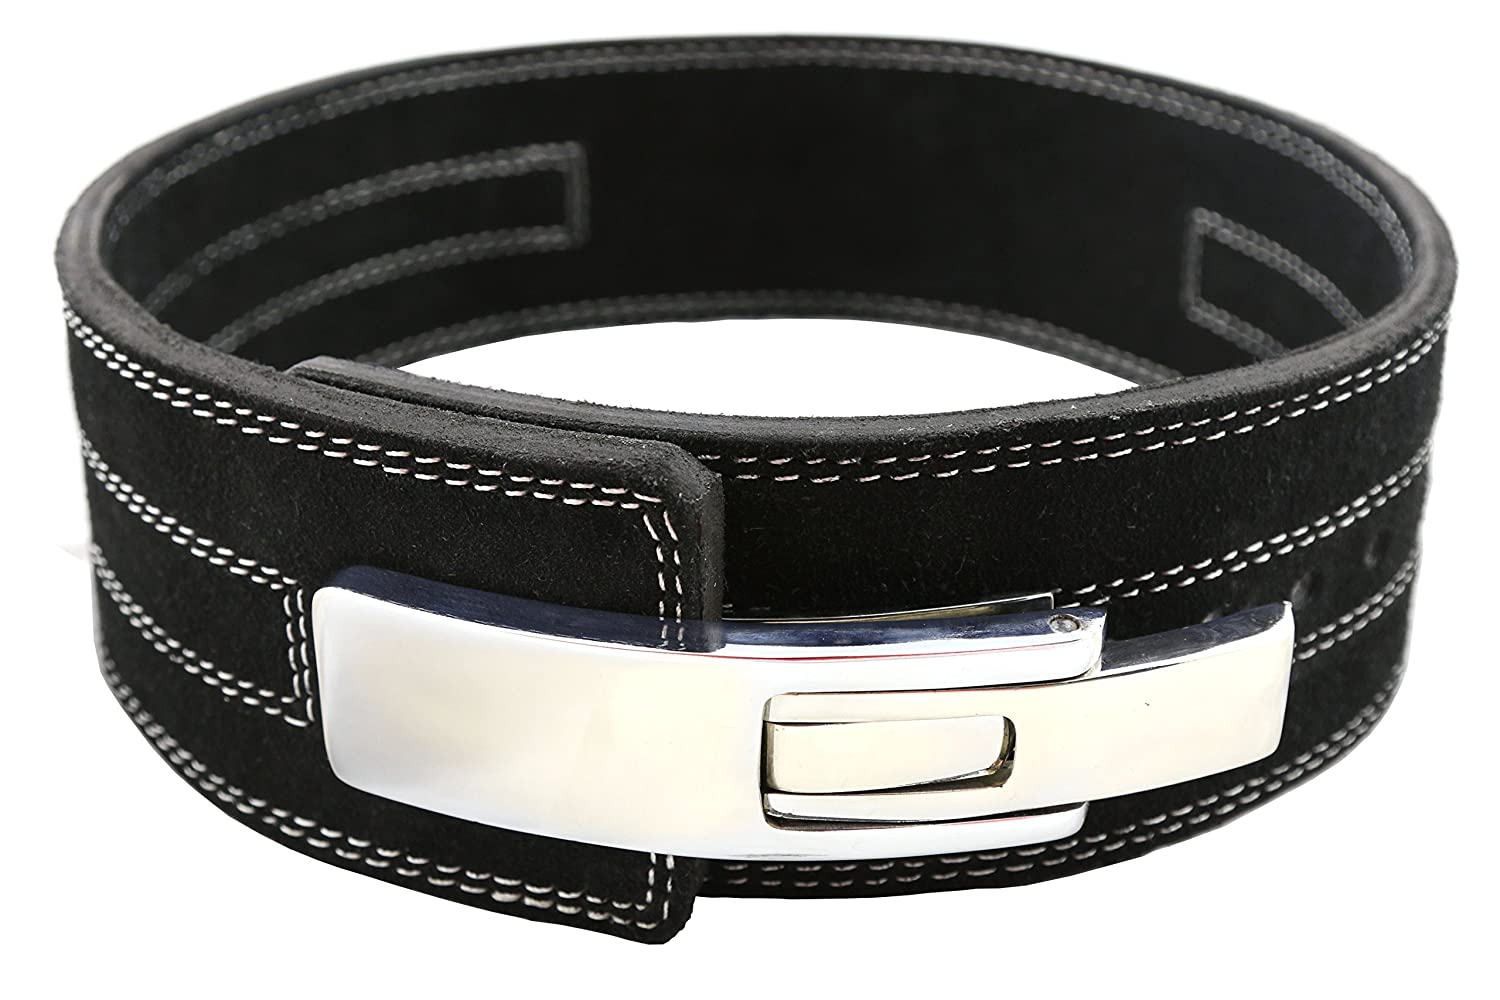 CFF 10mm Pro Lever Weightlifting Belt – Strongman, MMA, Boxing, Cross Training